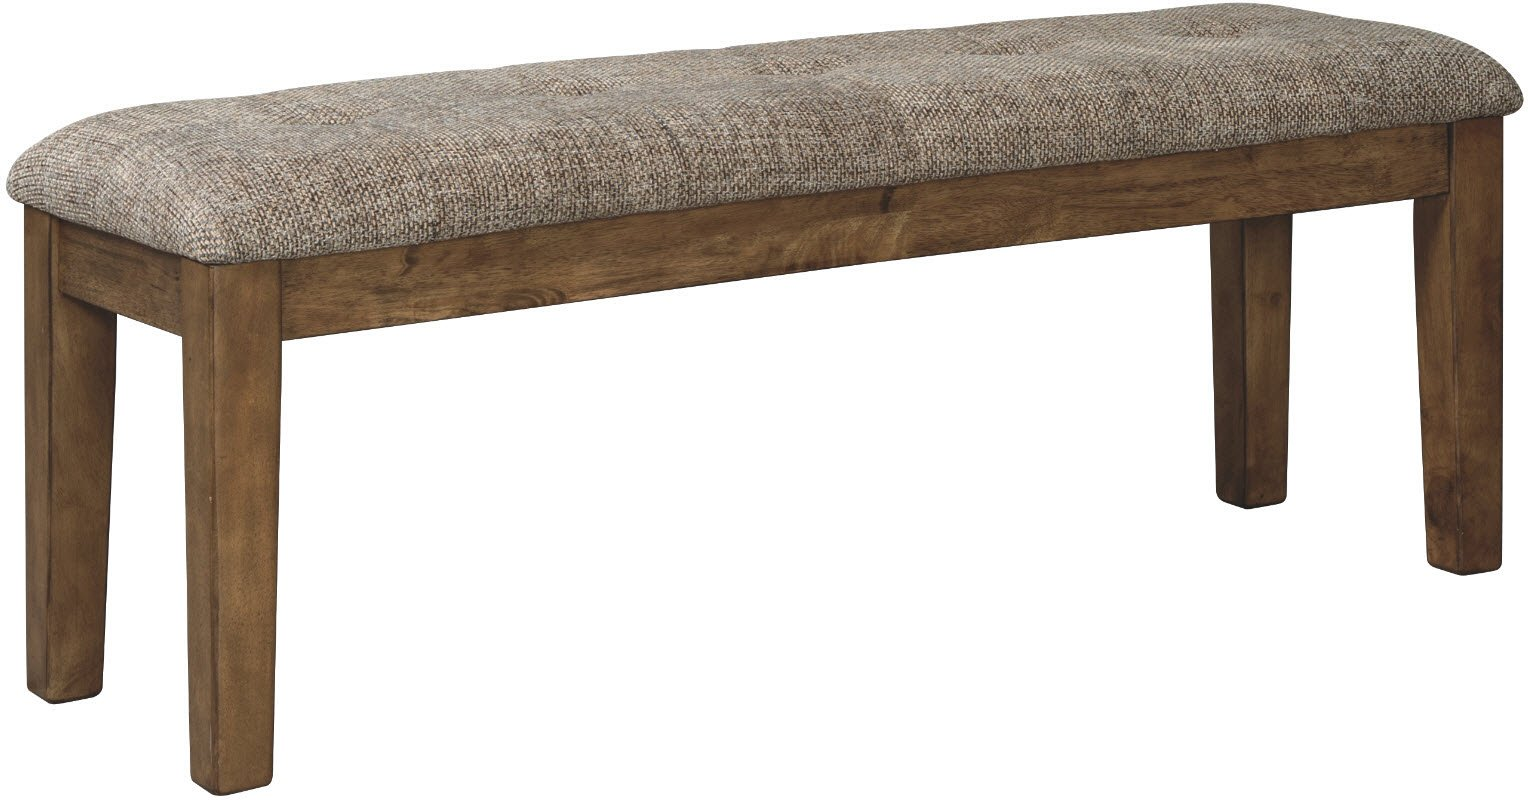 Ashley Furniture Signature Design - Flaybern Dining Room Bench - Brown